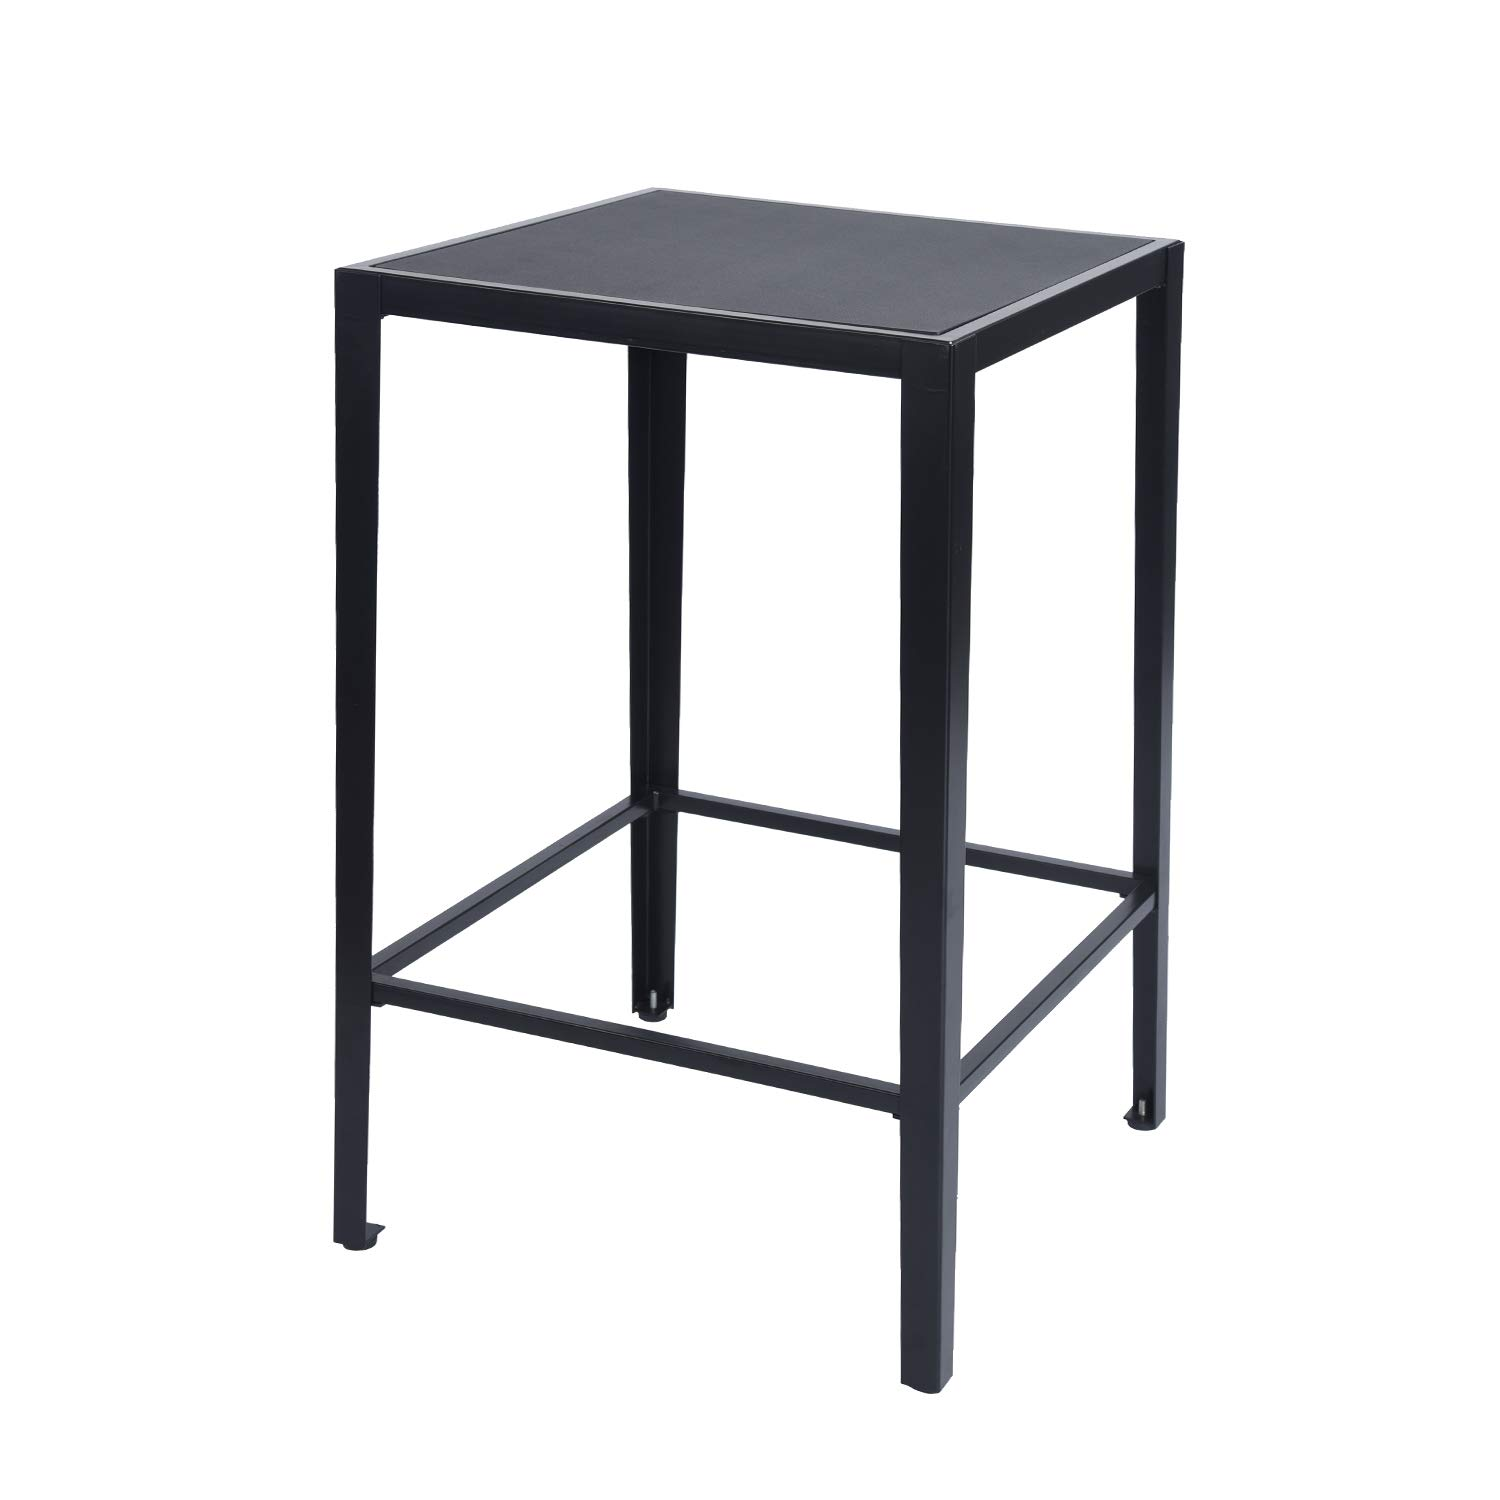 GreenForest Bar Table Modern 38.4-Inch Height Square High Top Dining Pub Table with Large Surface, Black by GreenForest